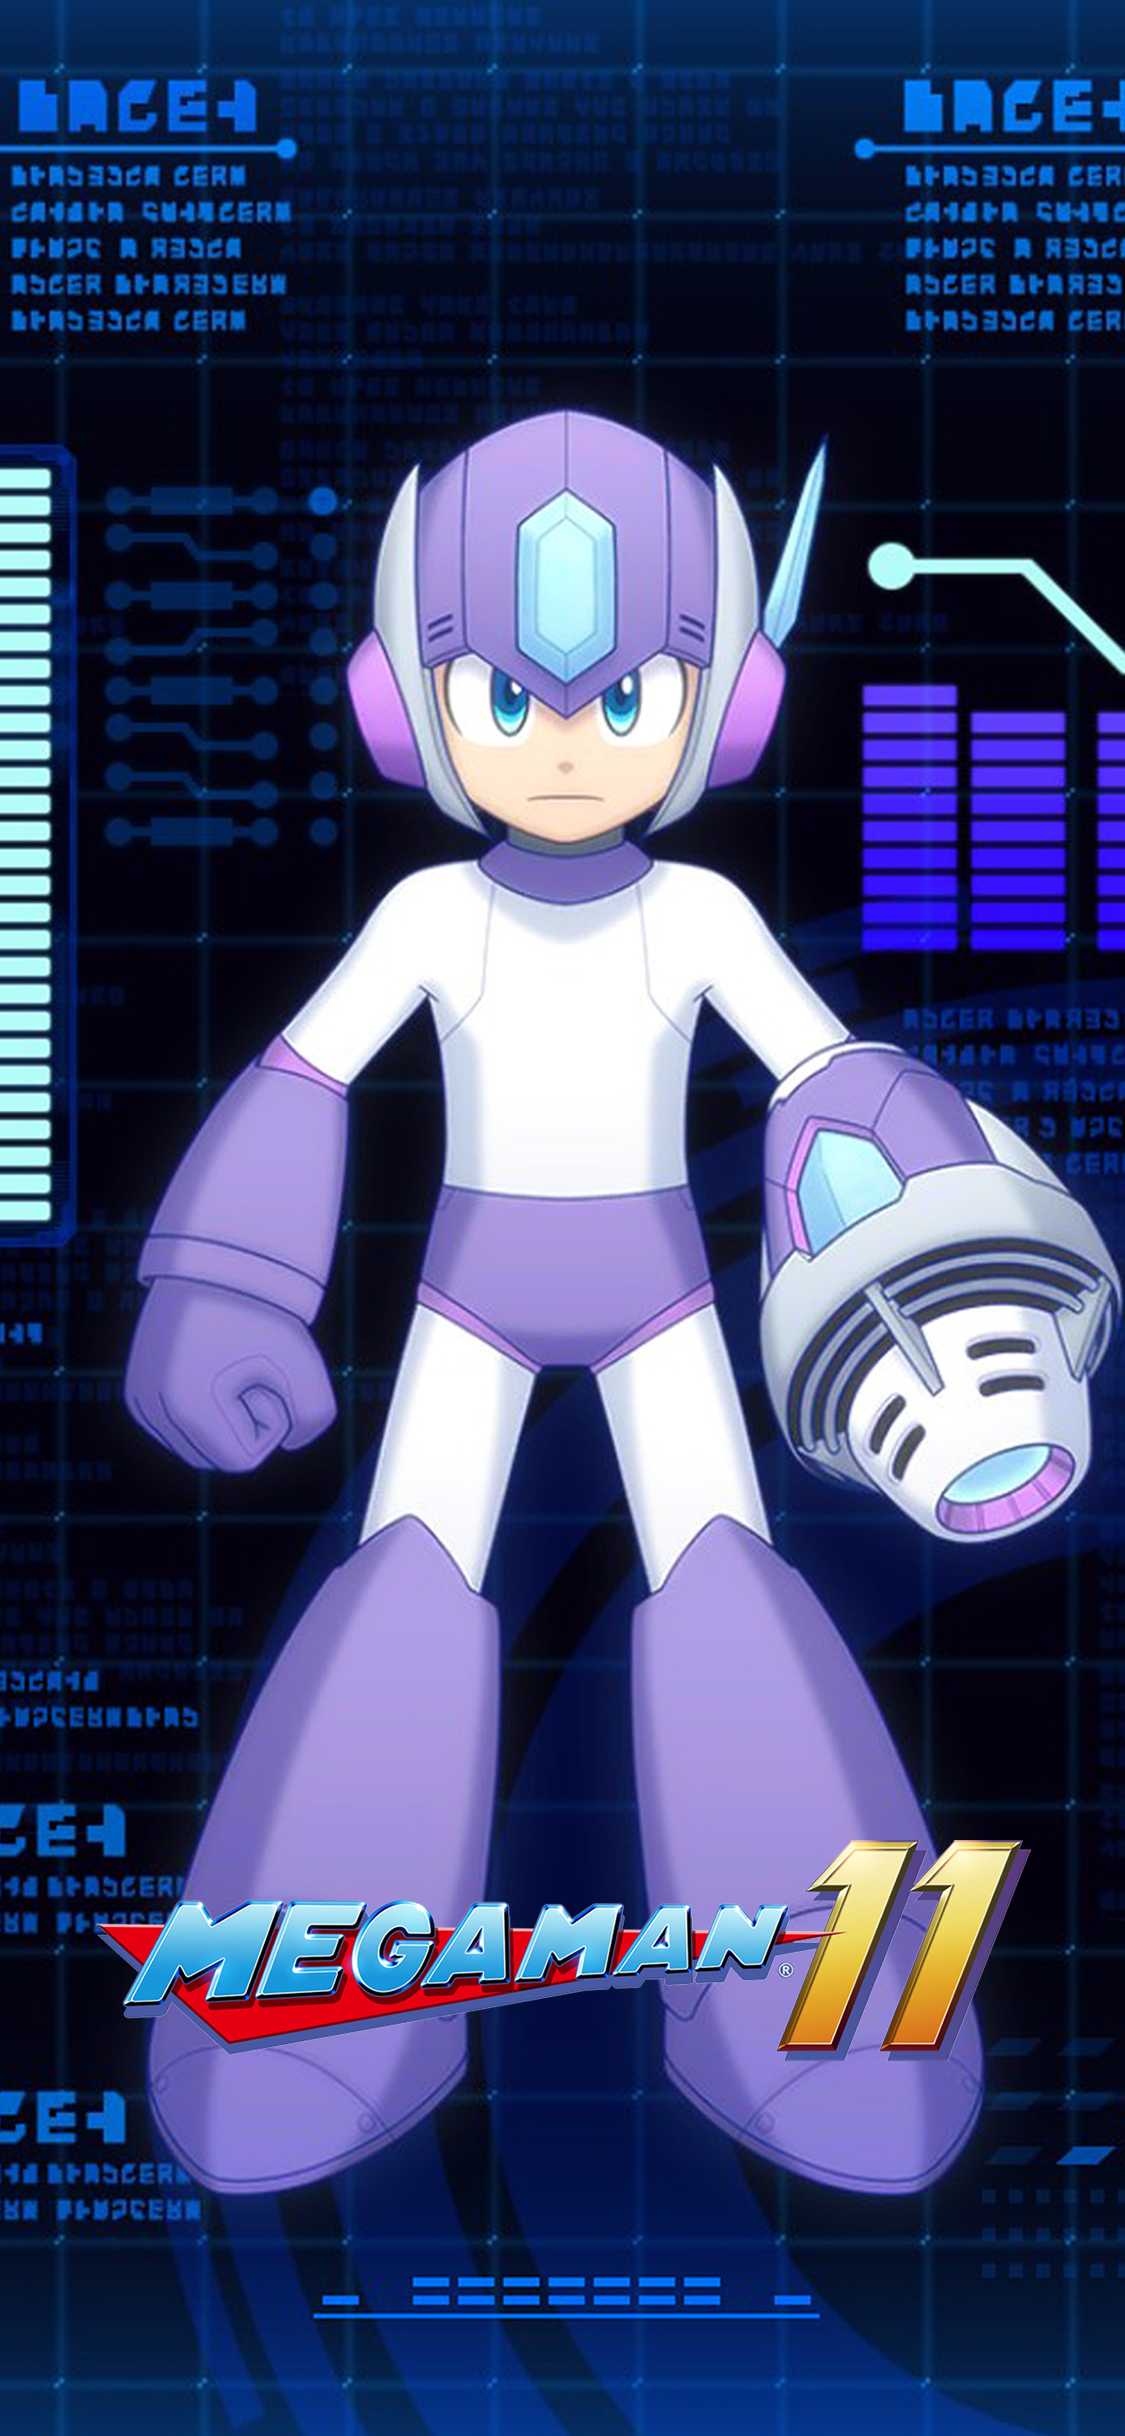 A8 Samsung Mega Man 11 Tundra Storm Weapon Wallpaper | Cat With Monocle